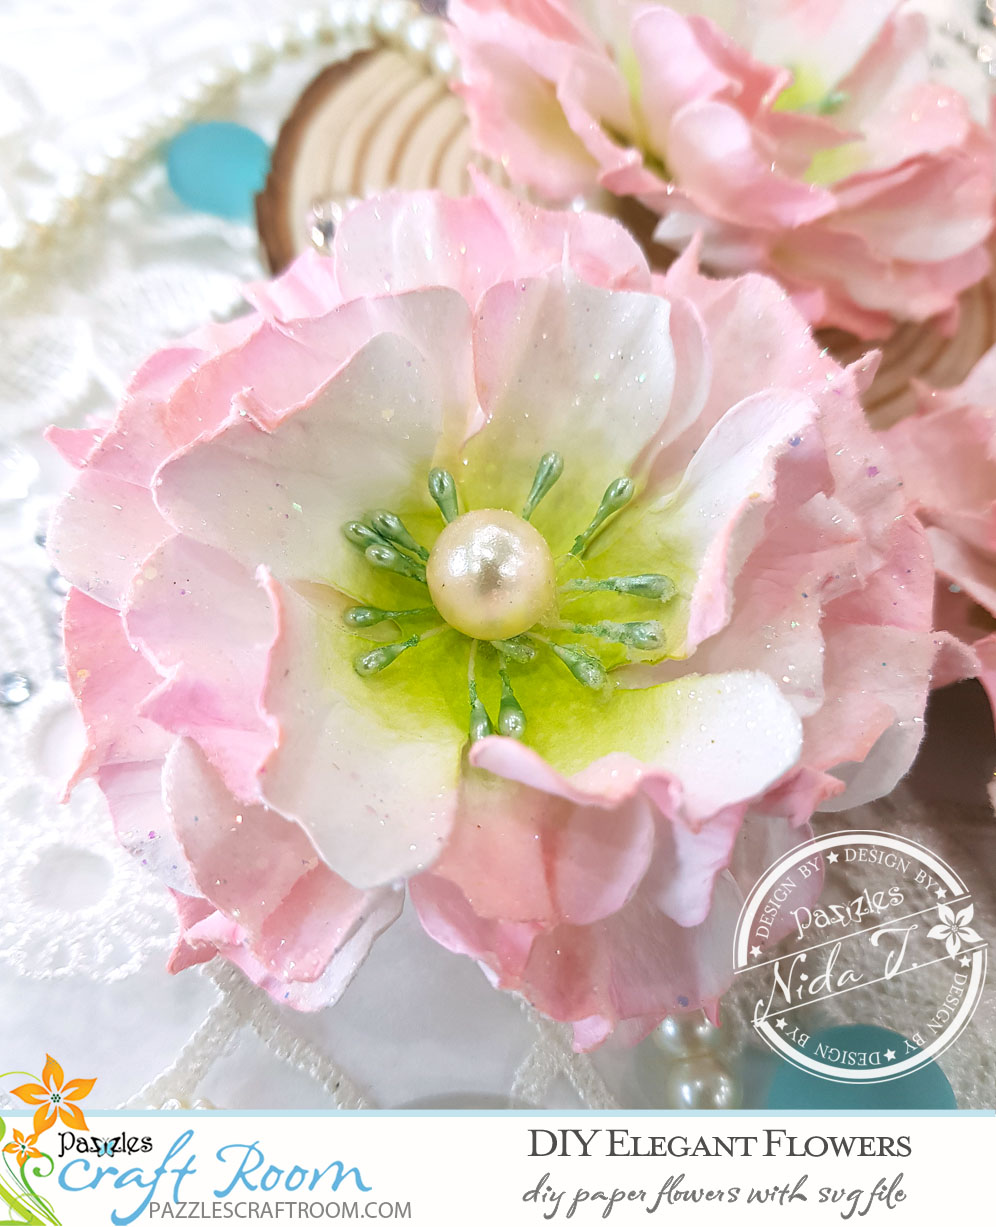 Pazzles Elegant DIY Paper Flowers with instant SVG download. Compatible with all major electronic cutters including Pazzles Inspiration, Cricut, and Silhouette Cameo. Design by Nida Tanweer.